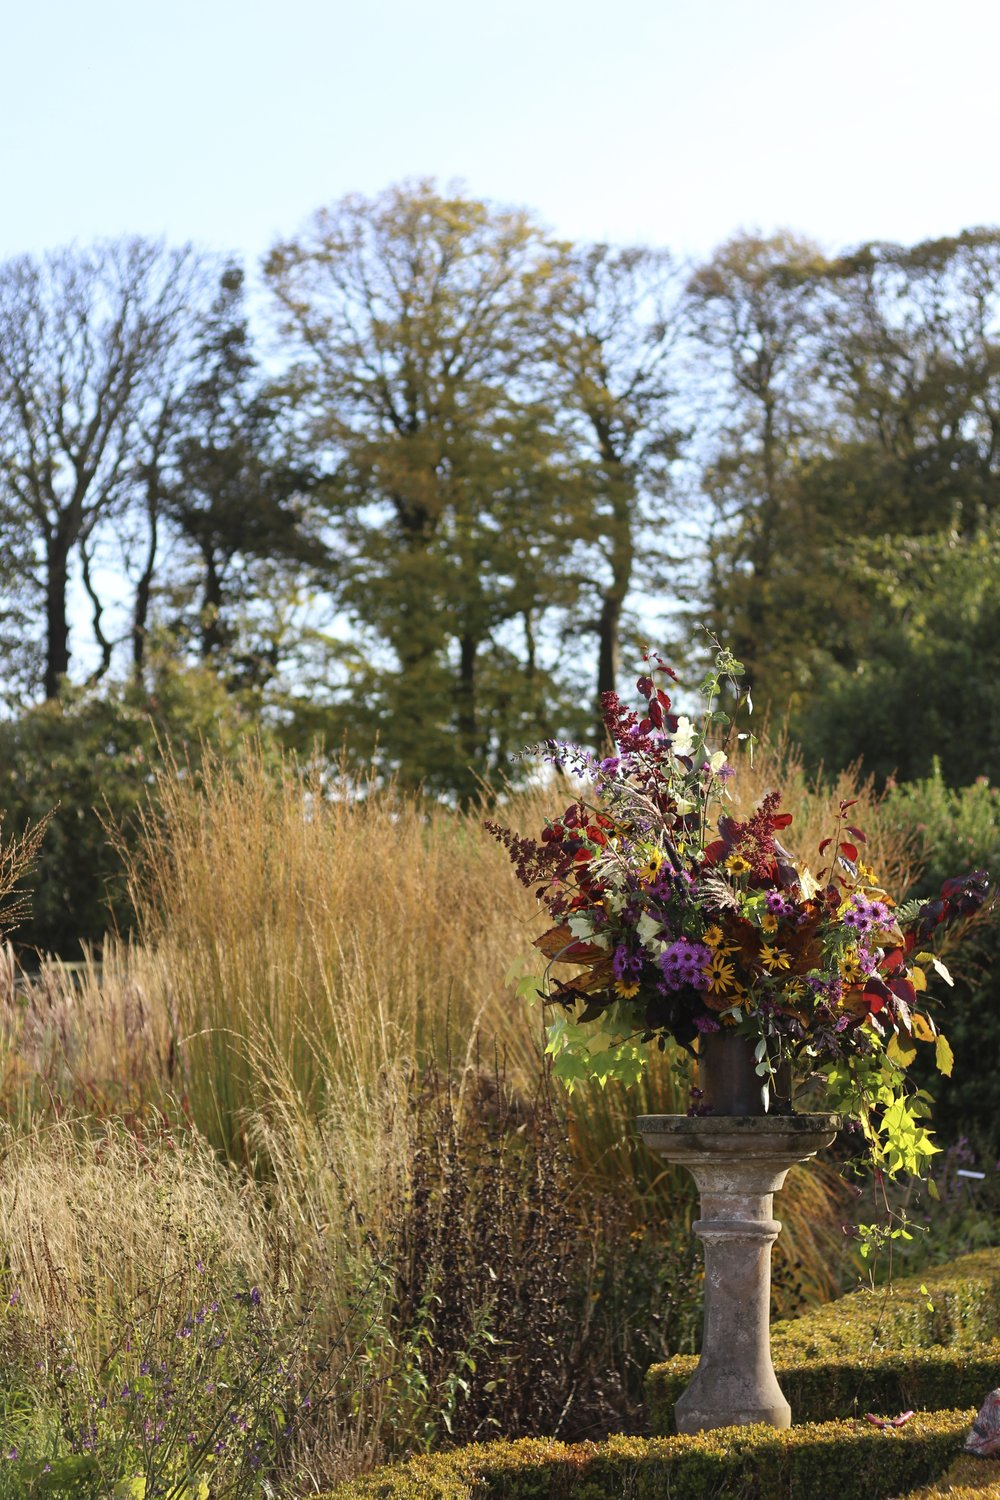 The walled garden's perennials assembled in a copper pot, late October, 2016.